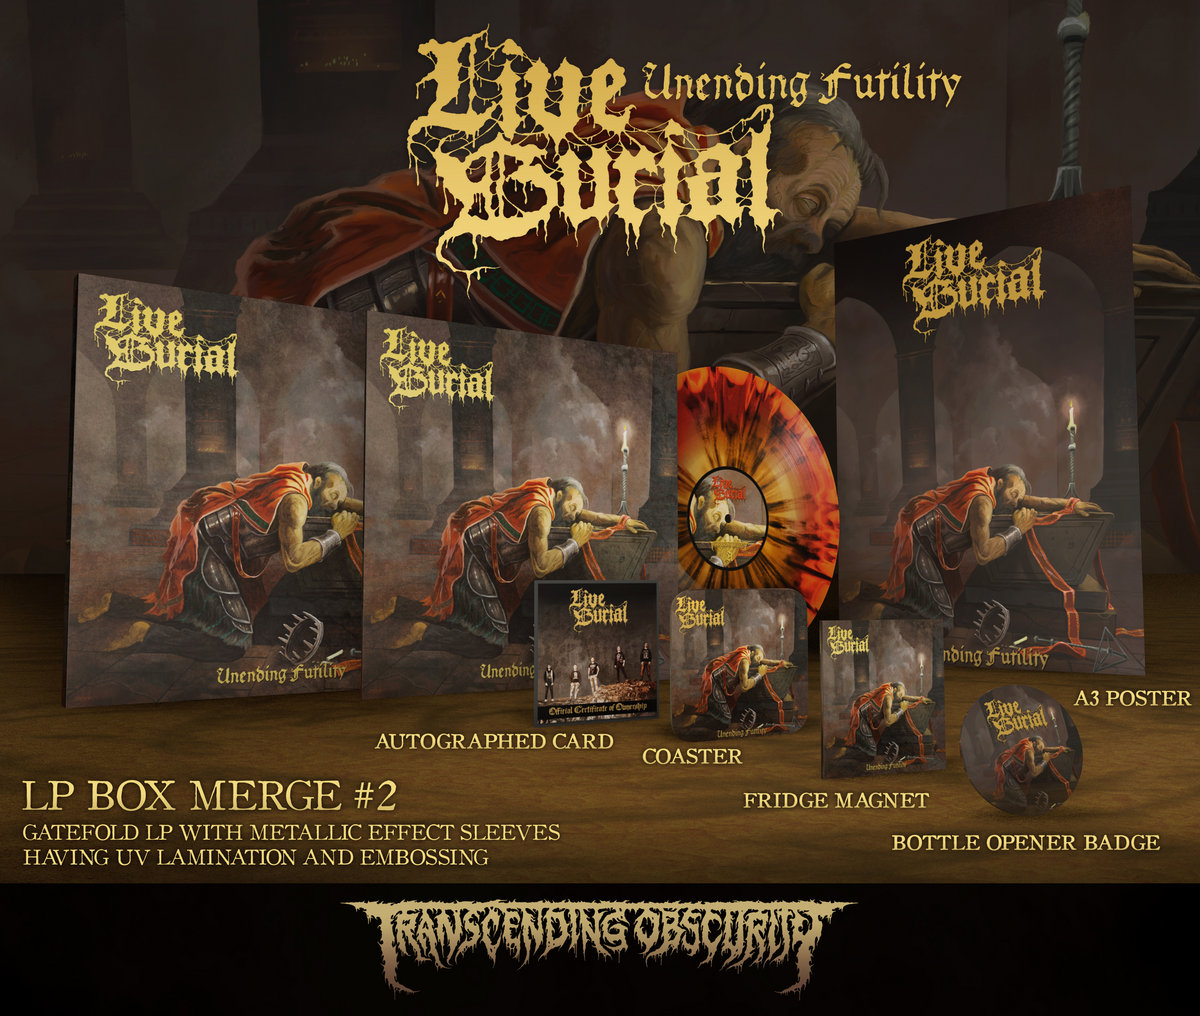 Unending Futility Merge #2 LP Box